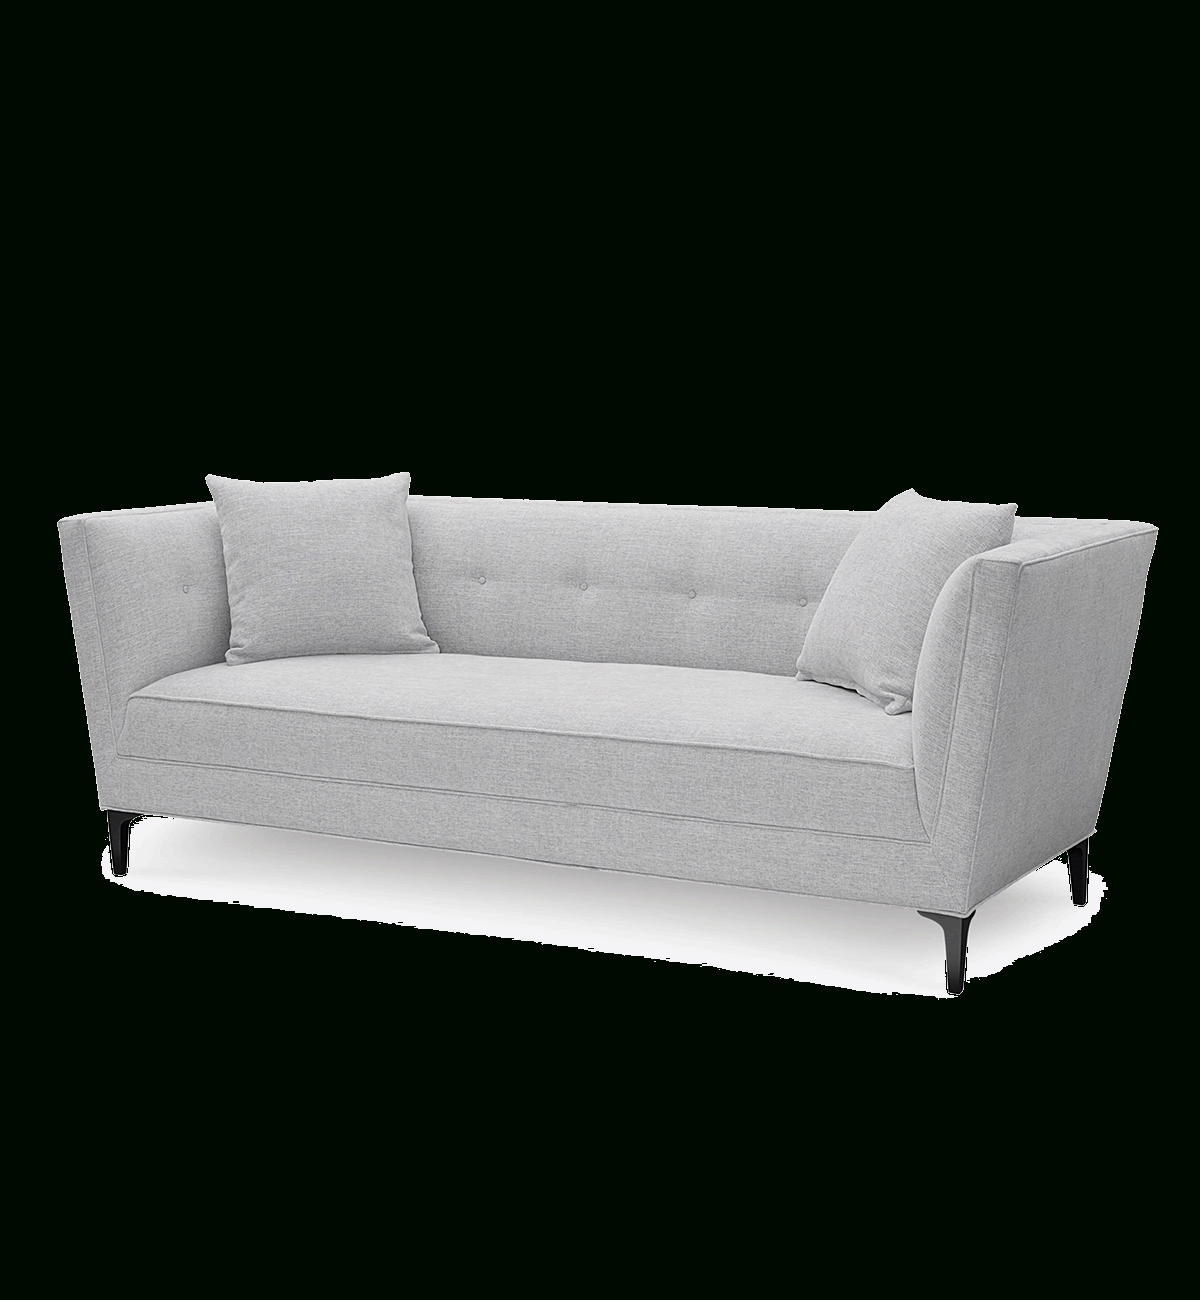 Current Macys Sofas Inside Couches And Sofas – Macy's (View 2 of 20)